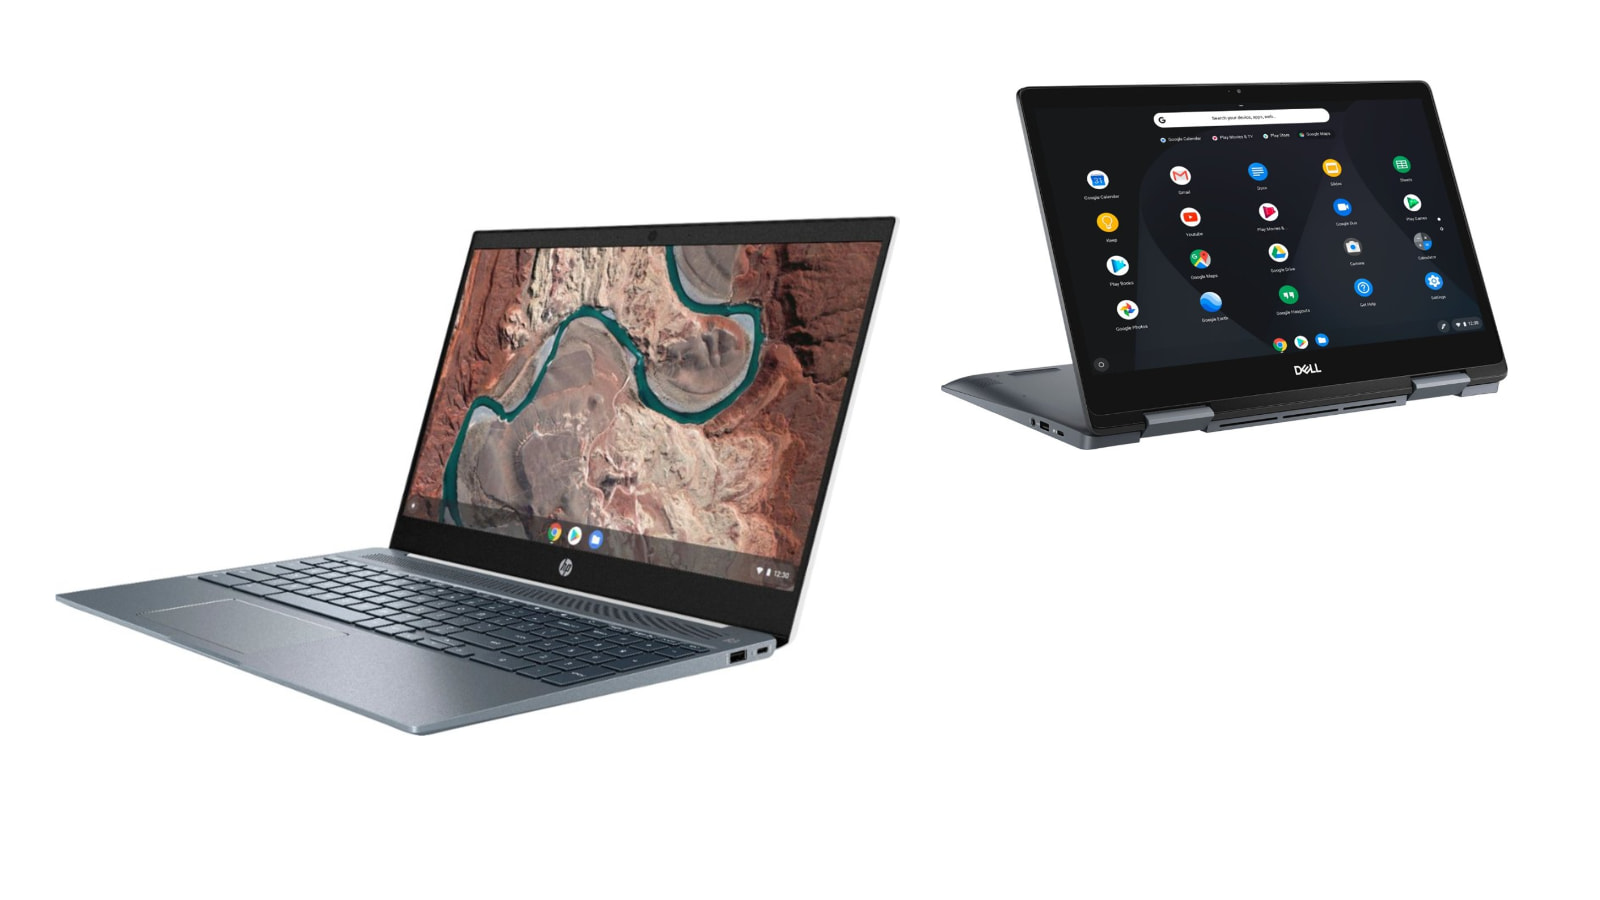 Grab one of these premium Chromebooks at Best Buy and save $200